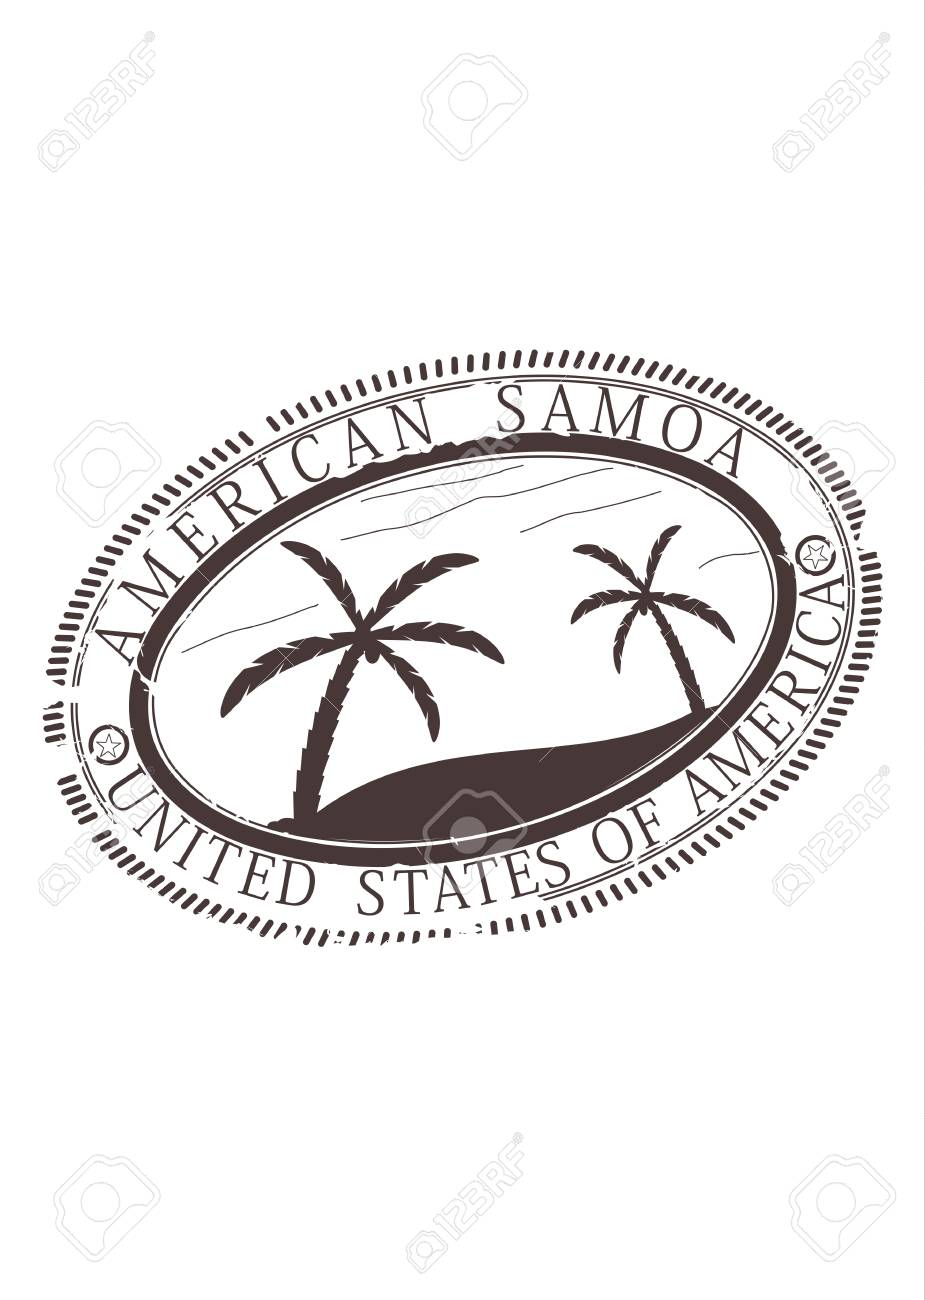 American Samoa in the United States. Rubber stamp in one color. Stock Vector - 19495994